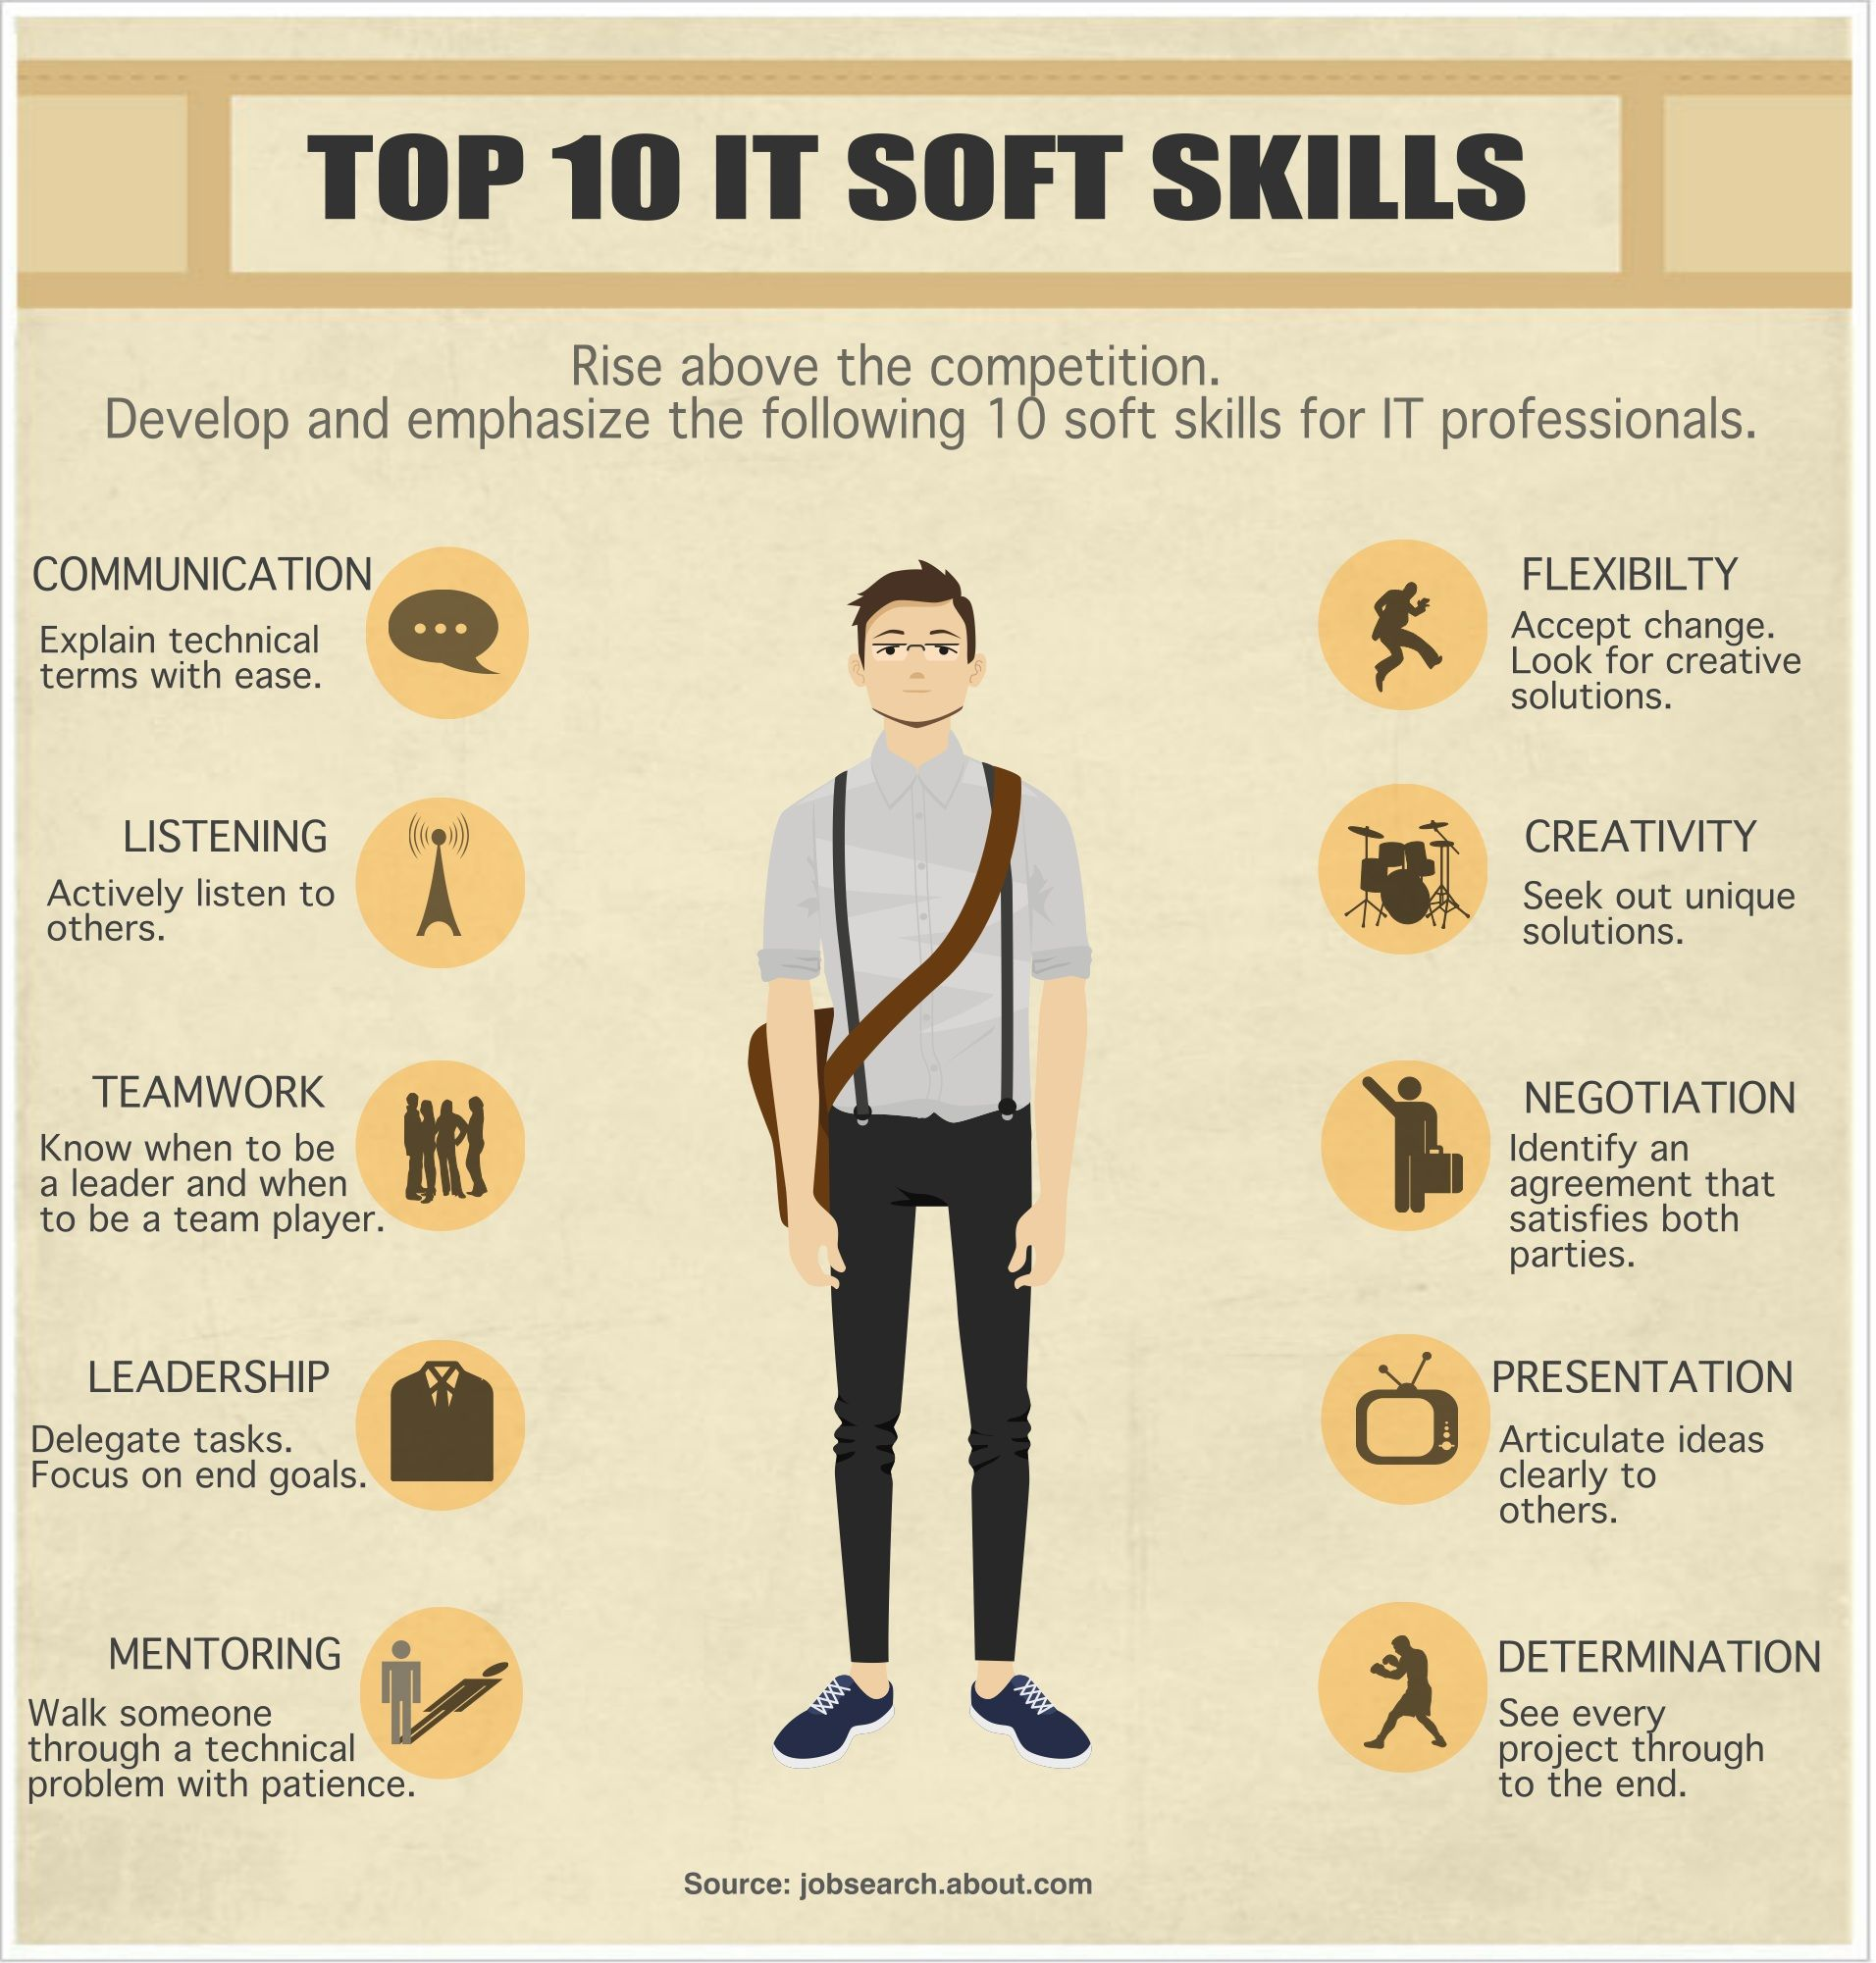 top it soft skills to be to work and the o jays top 10 soft skills in order for these soft skills to work in the workplace you need to have proper etiquette i see how soft skills depends on everyday